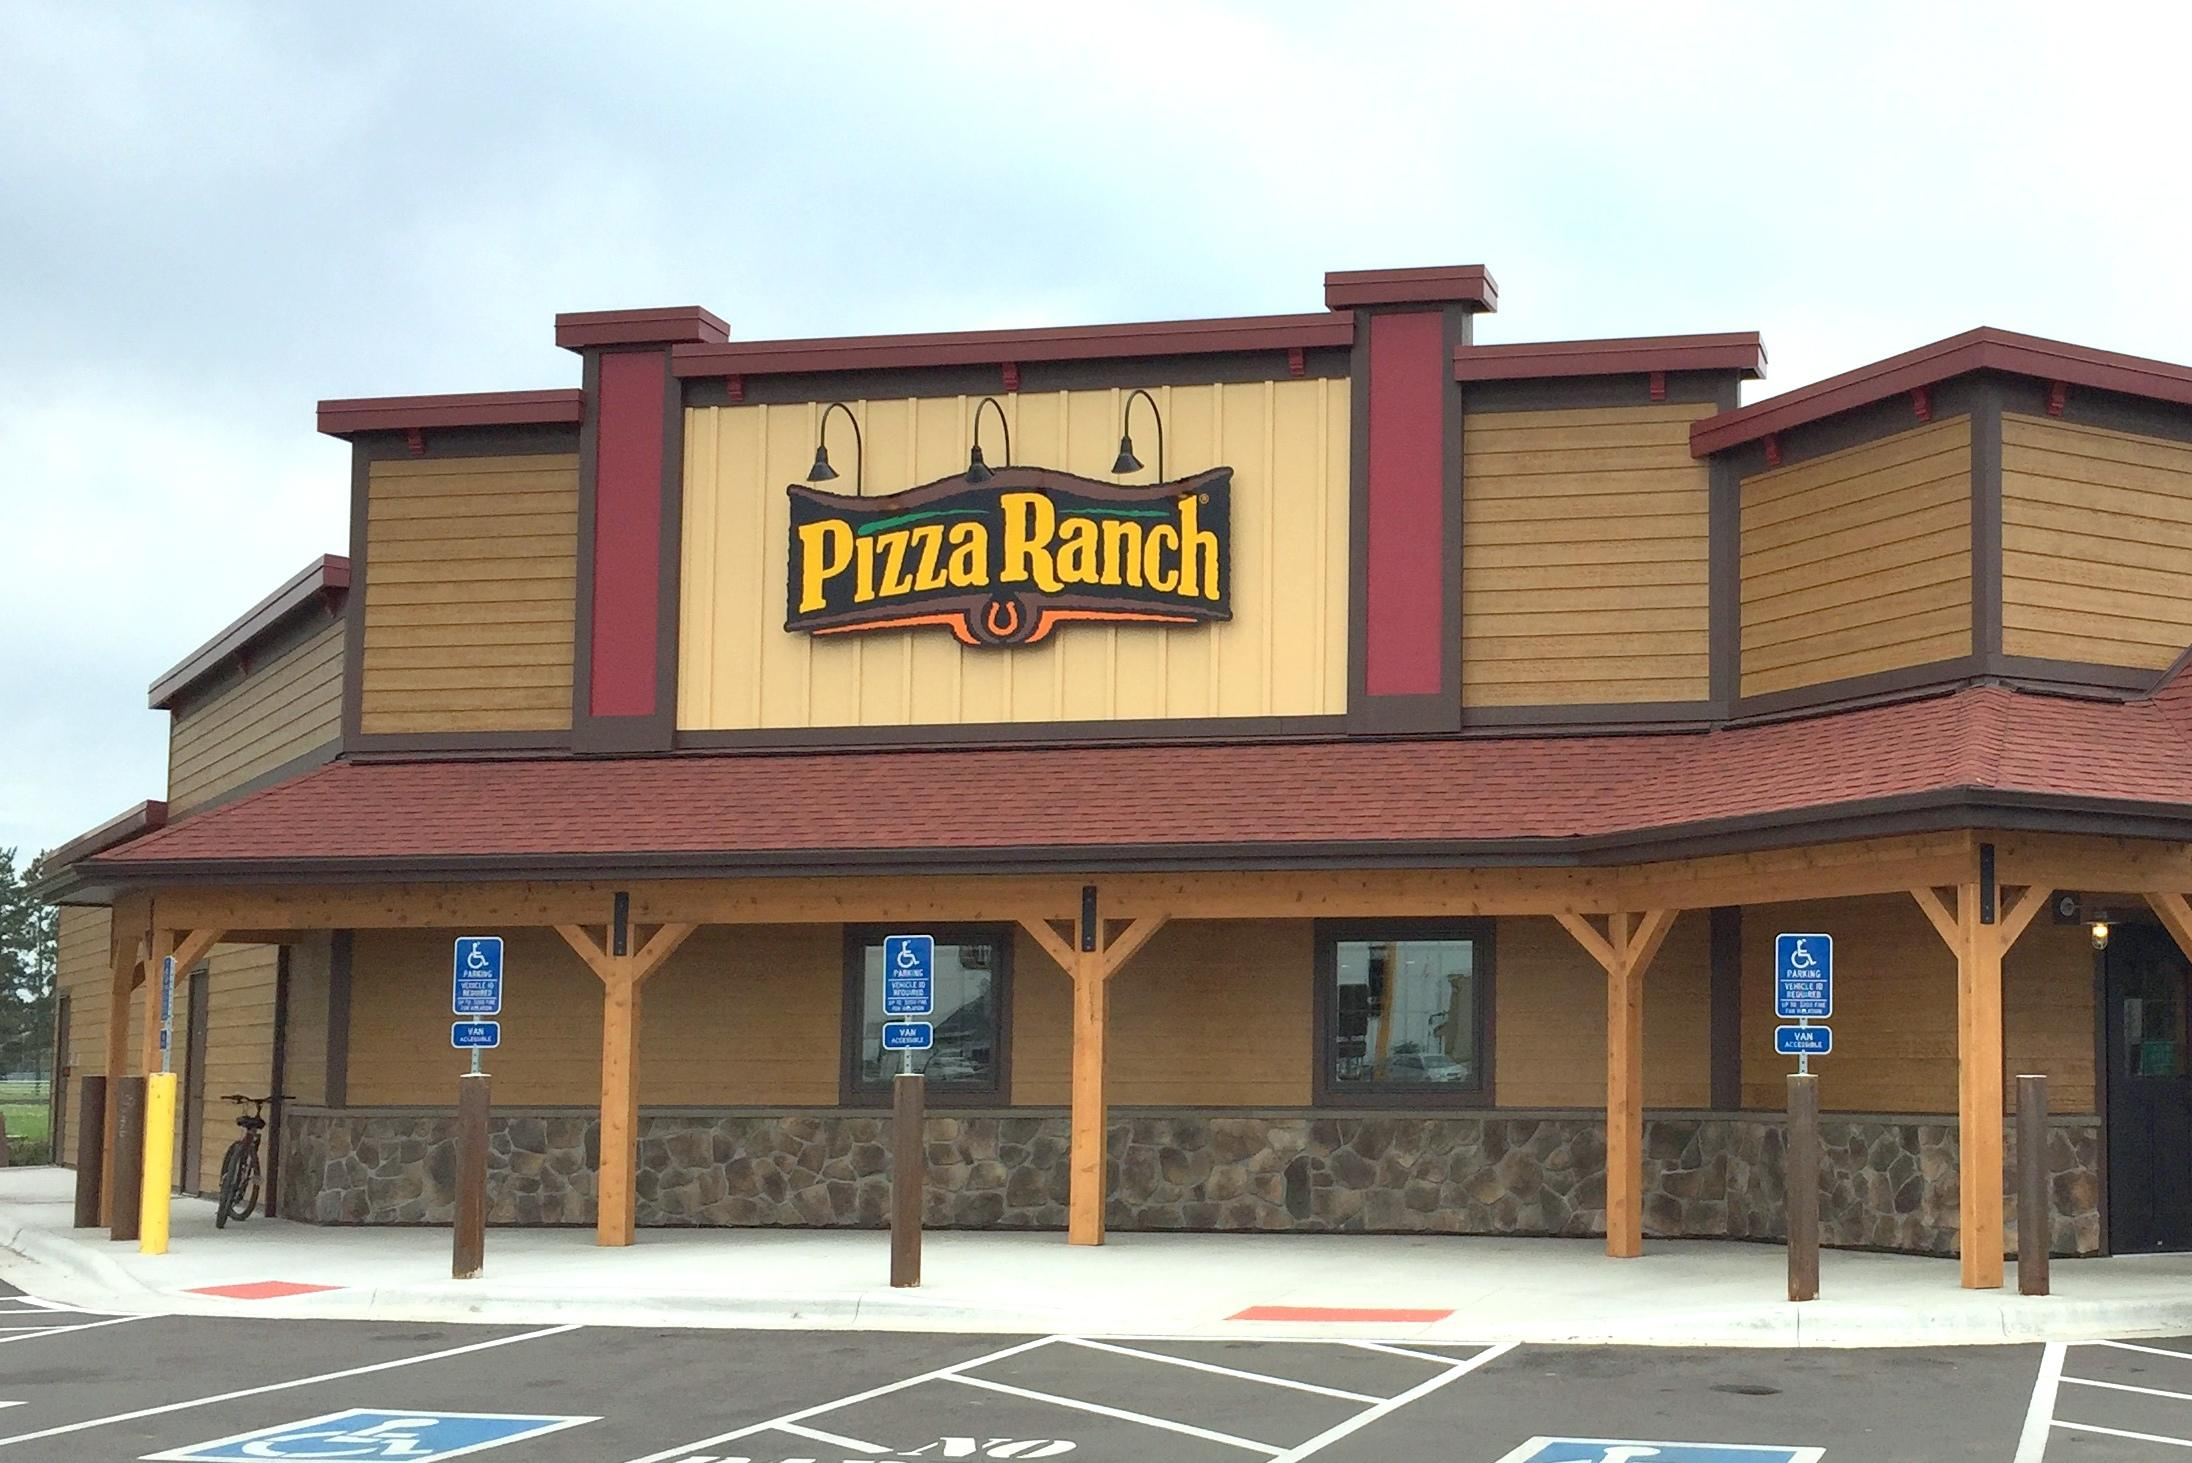 Pizza Ranch - 3rd Avenue SE, Perham, Minnesota - Rated based on 60 Reviews